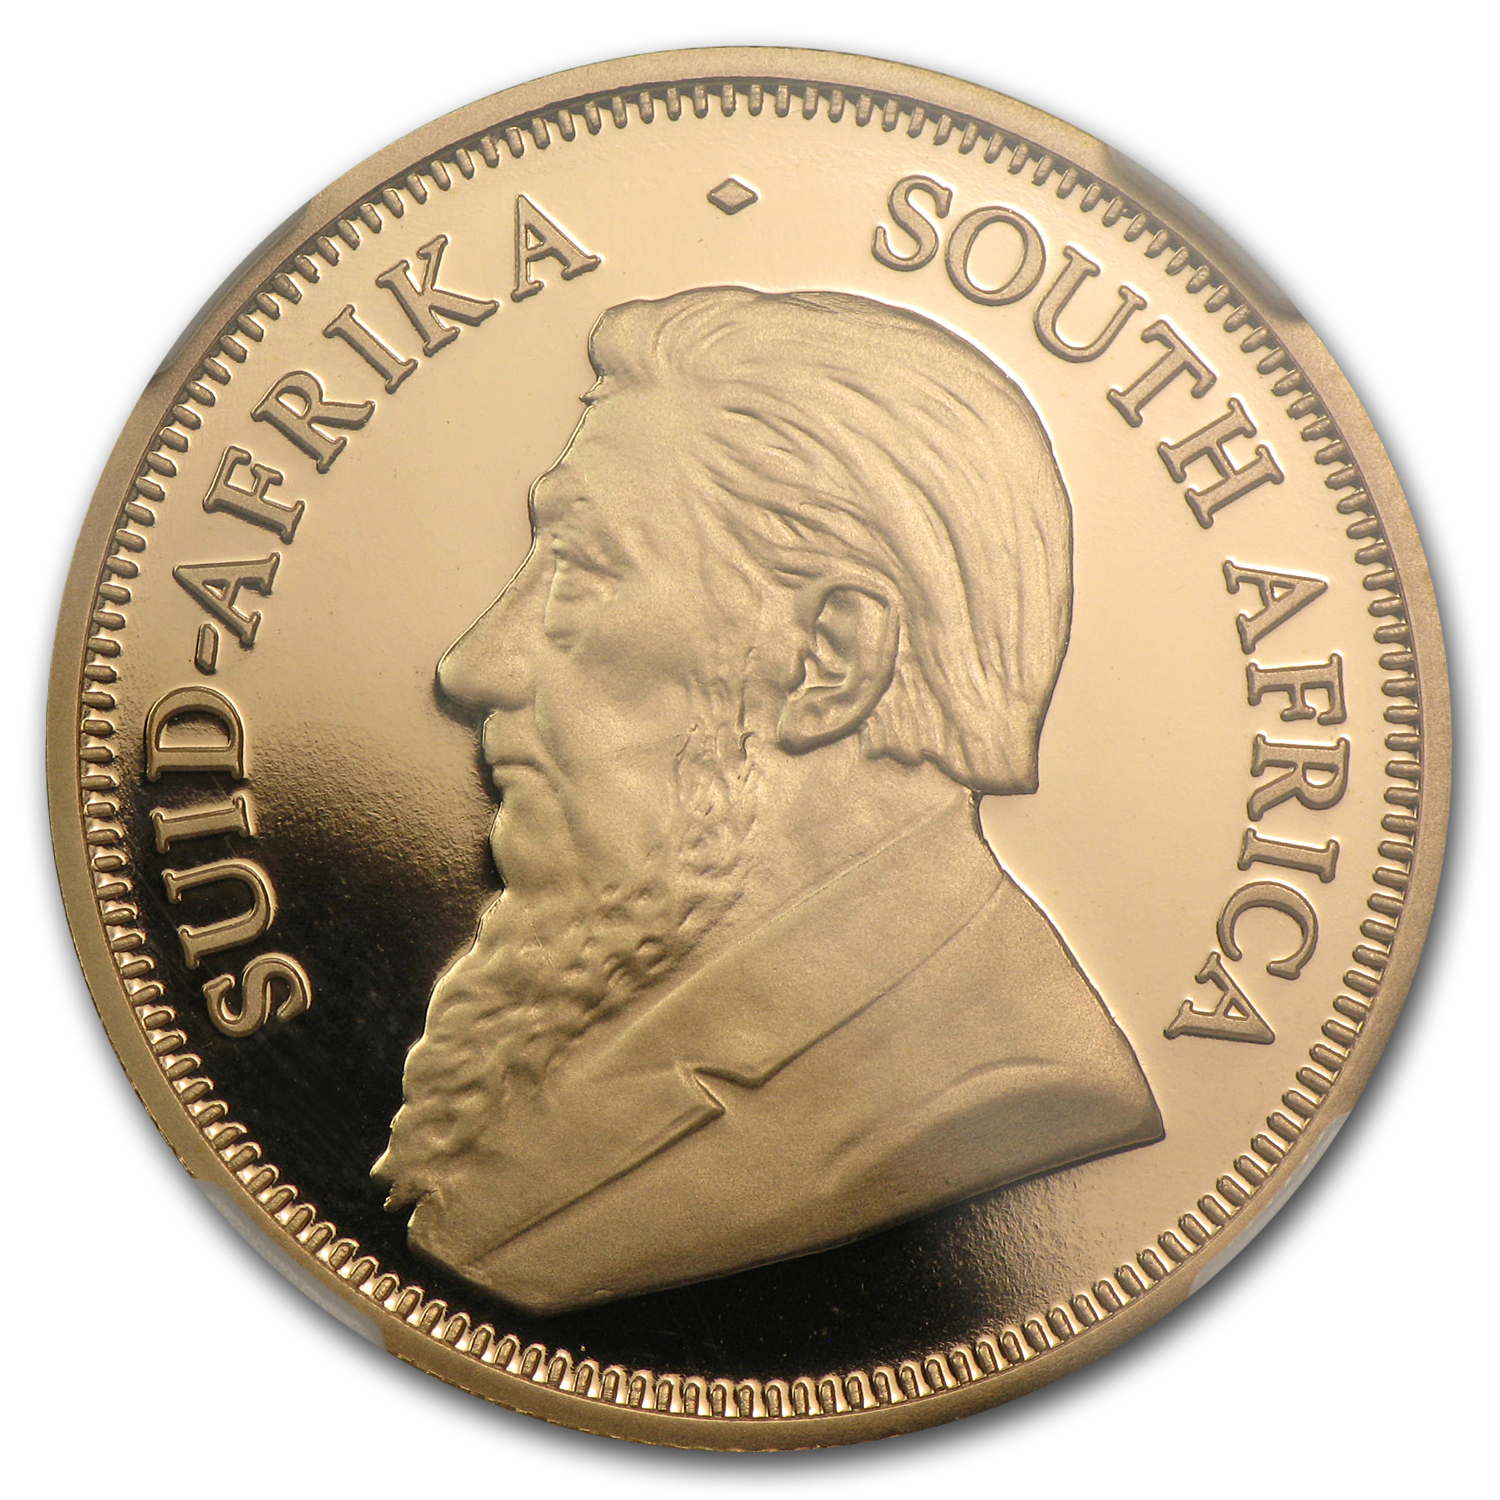 2009 South Africa 1/2 oz Gold Krugerrand PF-69 NGC